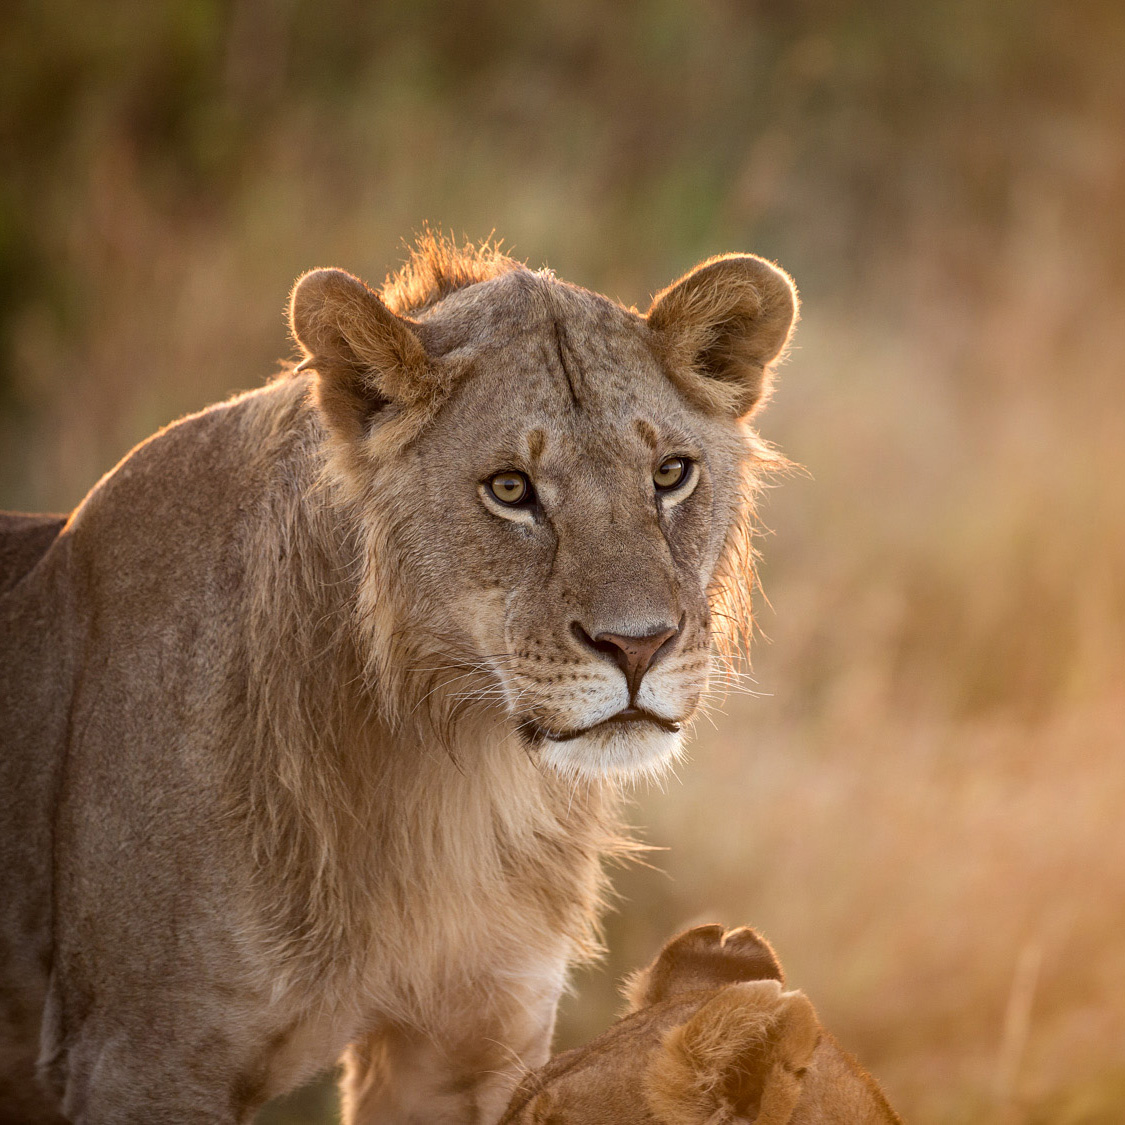 The morning after for young lions captured with backlighting.